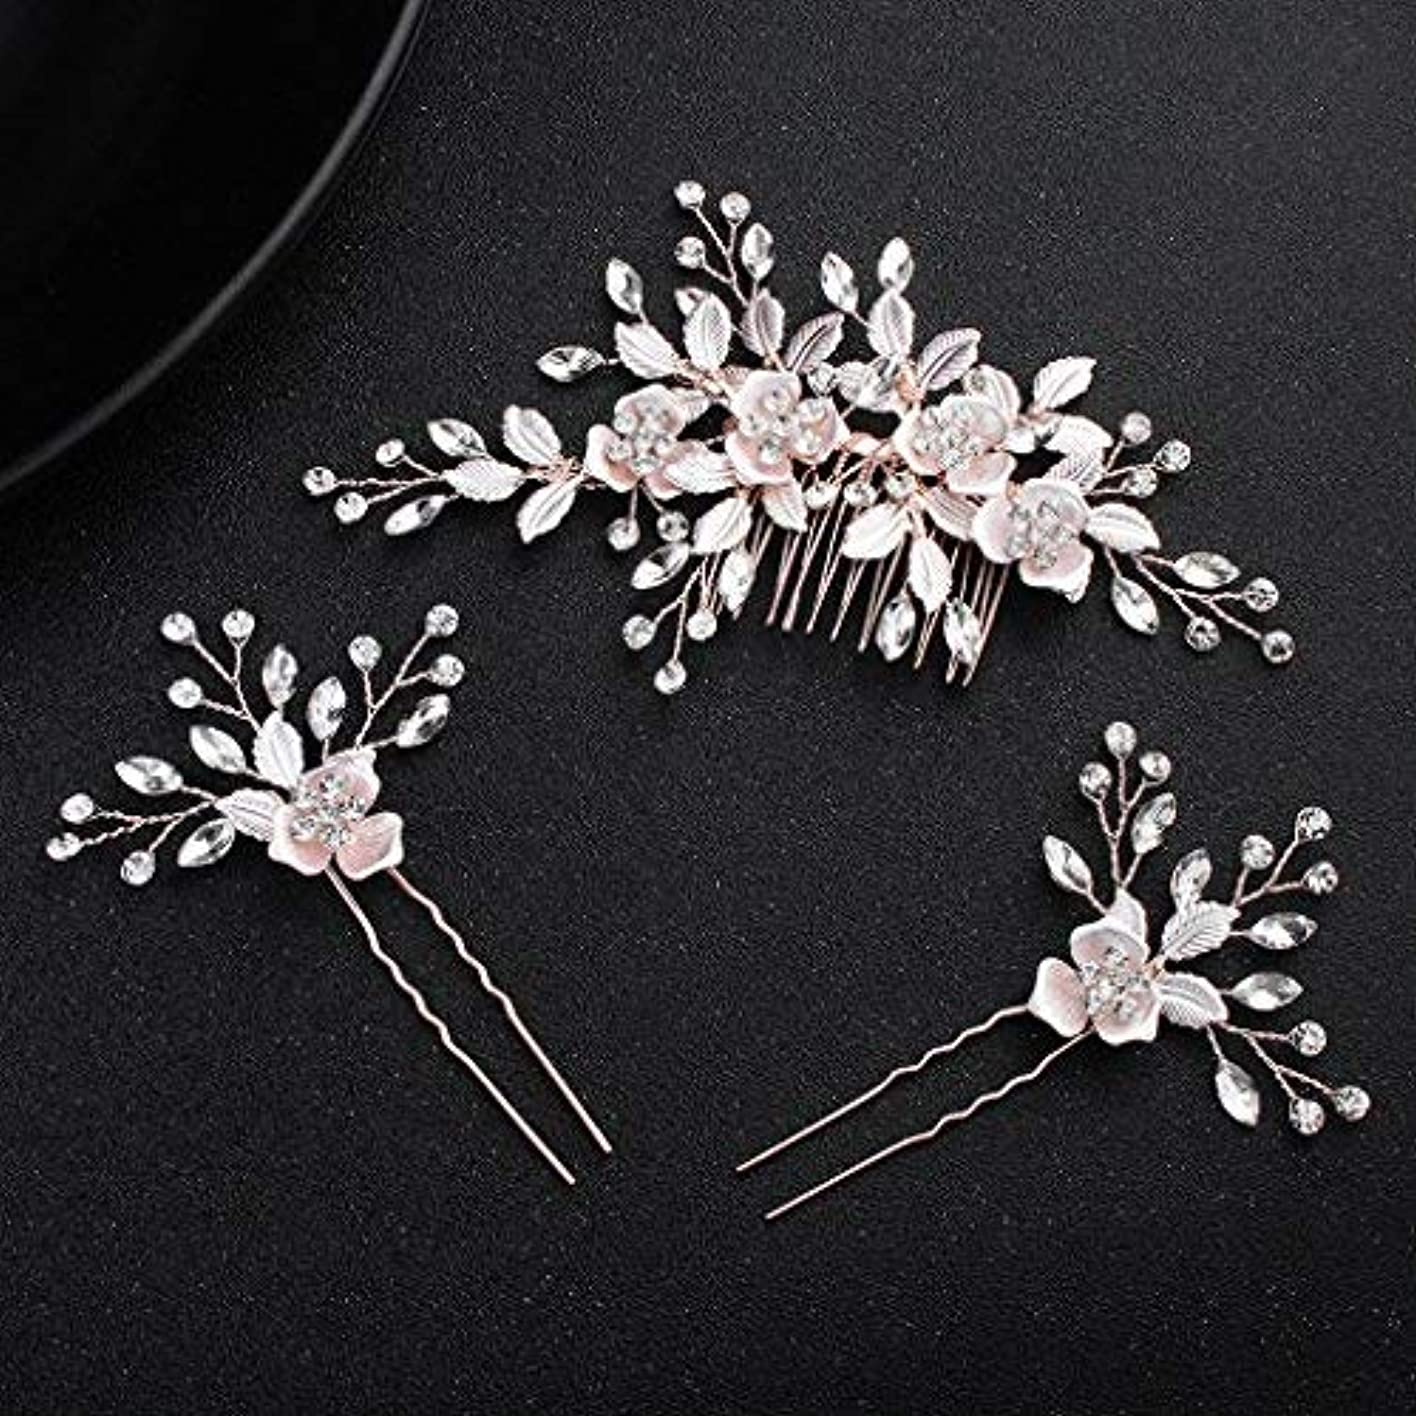 秋のため反発obqoo Crystal Flowers Style Colorful Leaves Metal Bridal Hair Comb with 2 pcs Pins Rose Gold [並行輸入品]